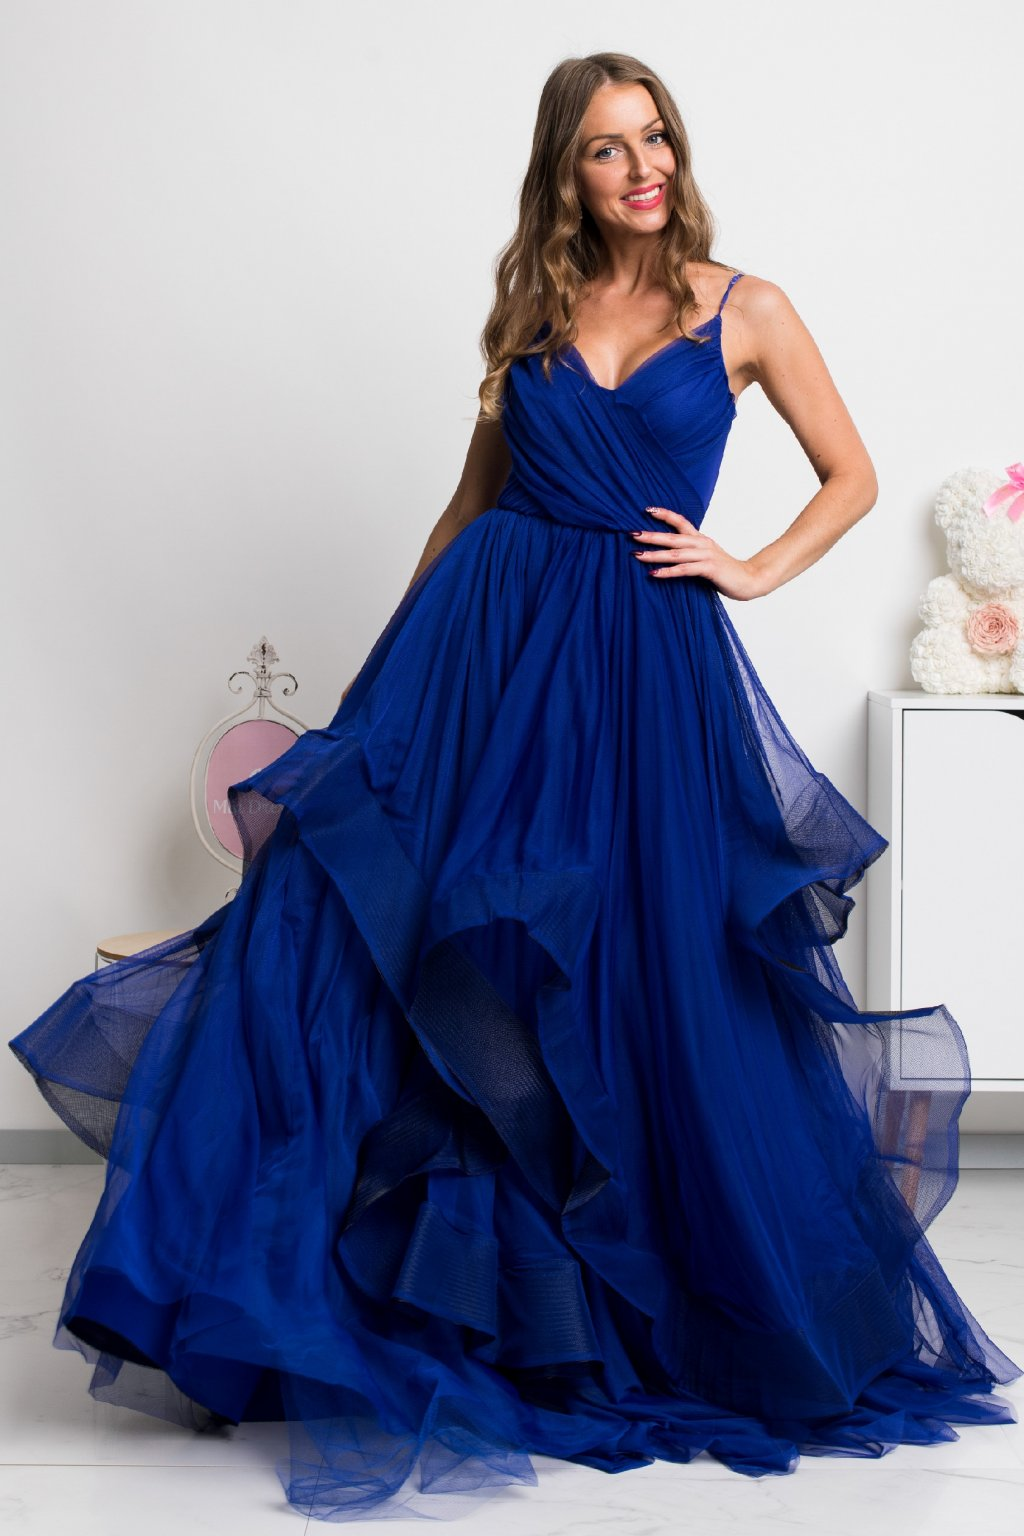 Blue tulle formal dress